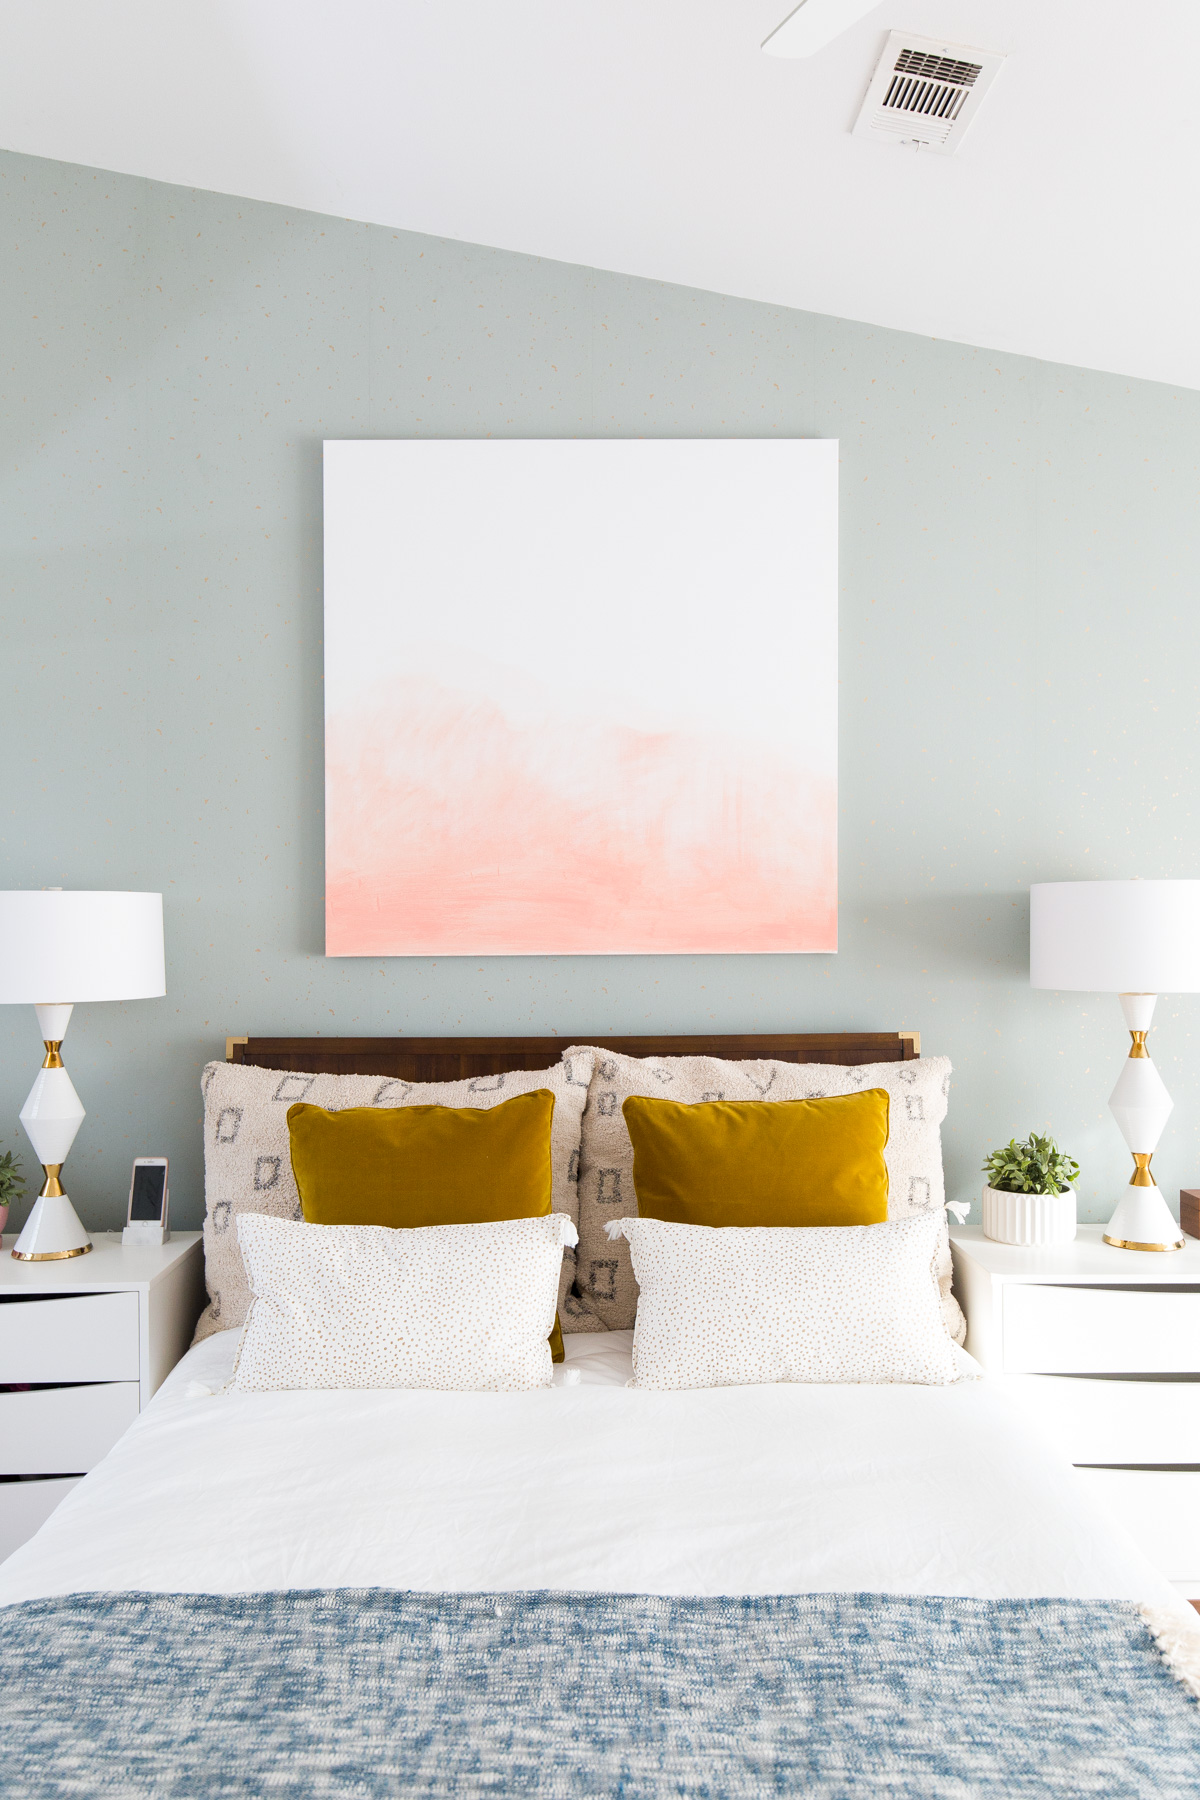 6 Ideas On How To Display Your Home Accessories: 23 Decorating Tricks For Your Bedroom